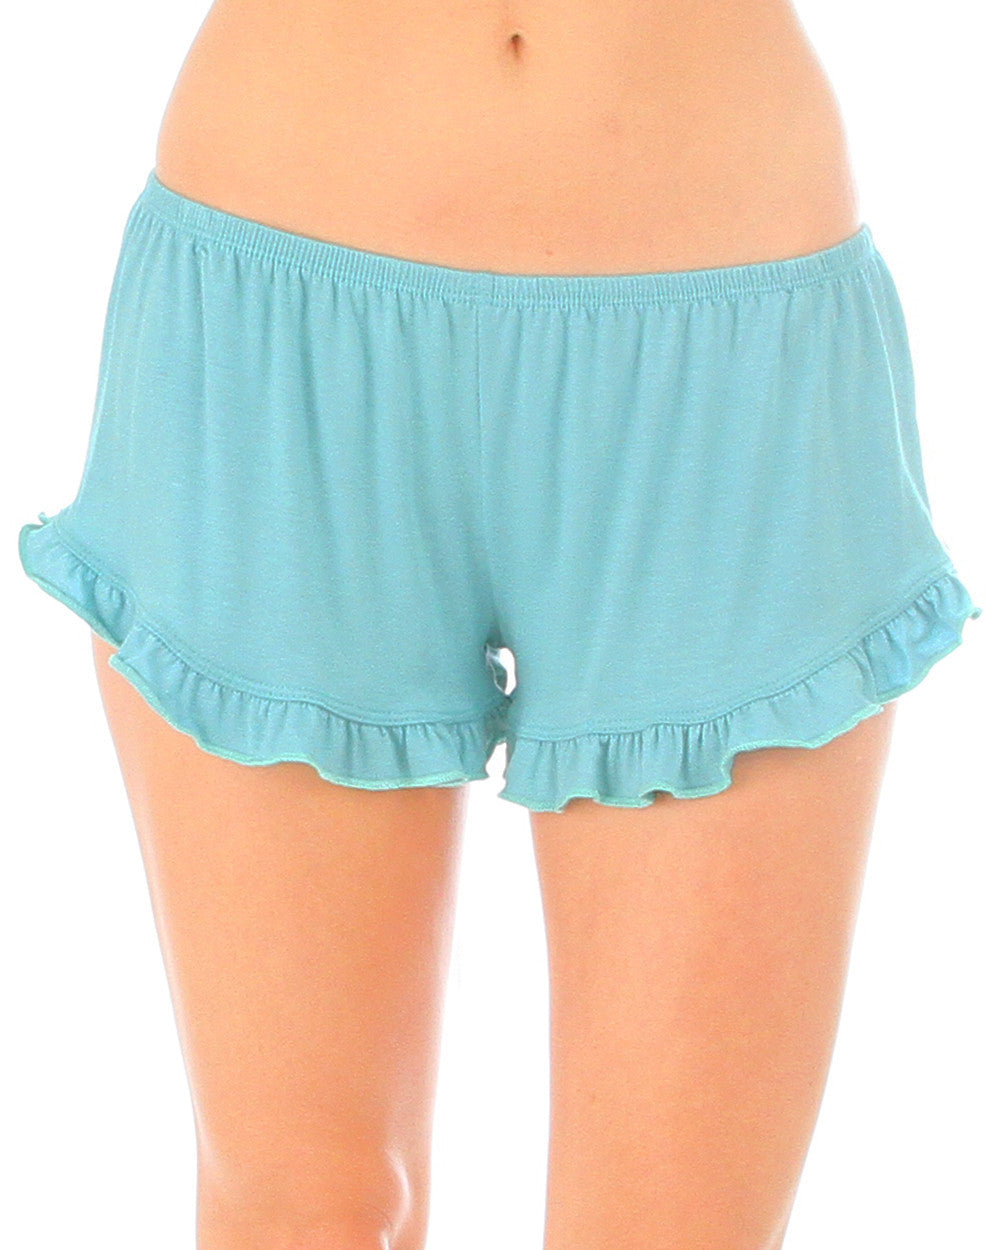 Vodi Shorts With Ruffle Trim In Mint